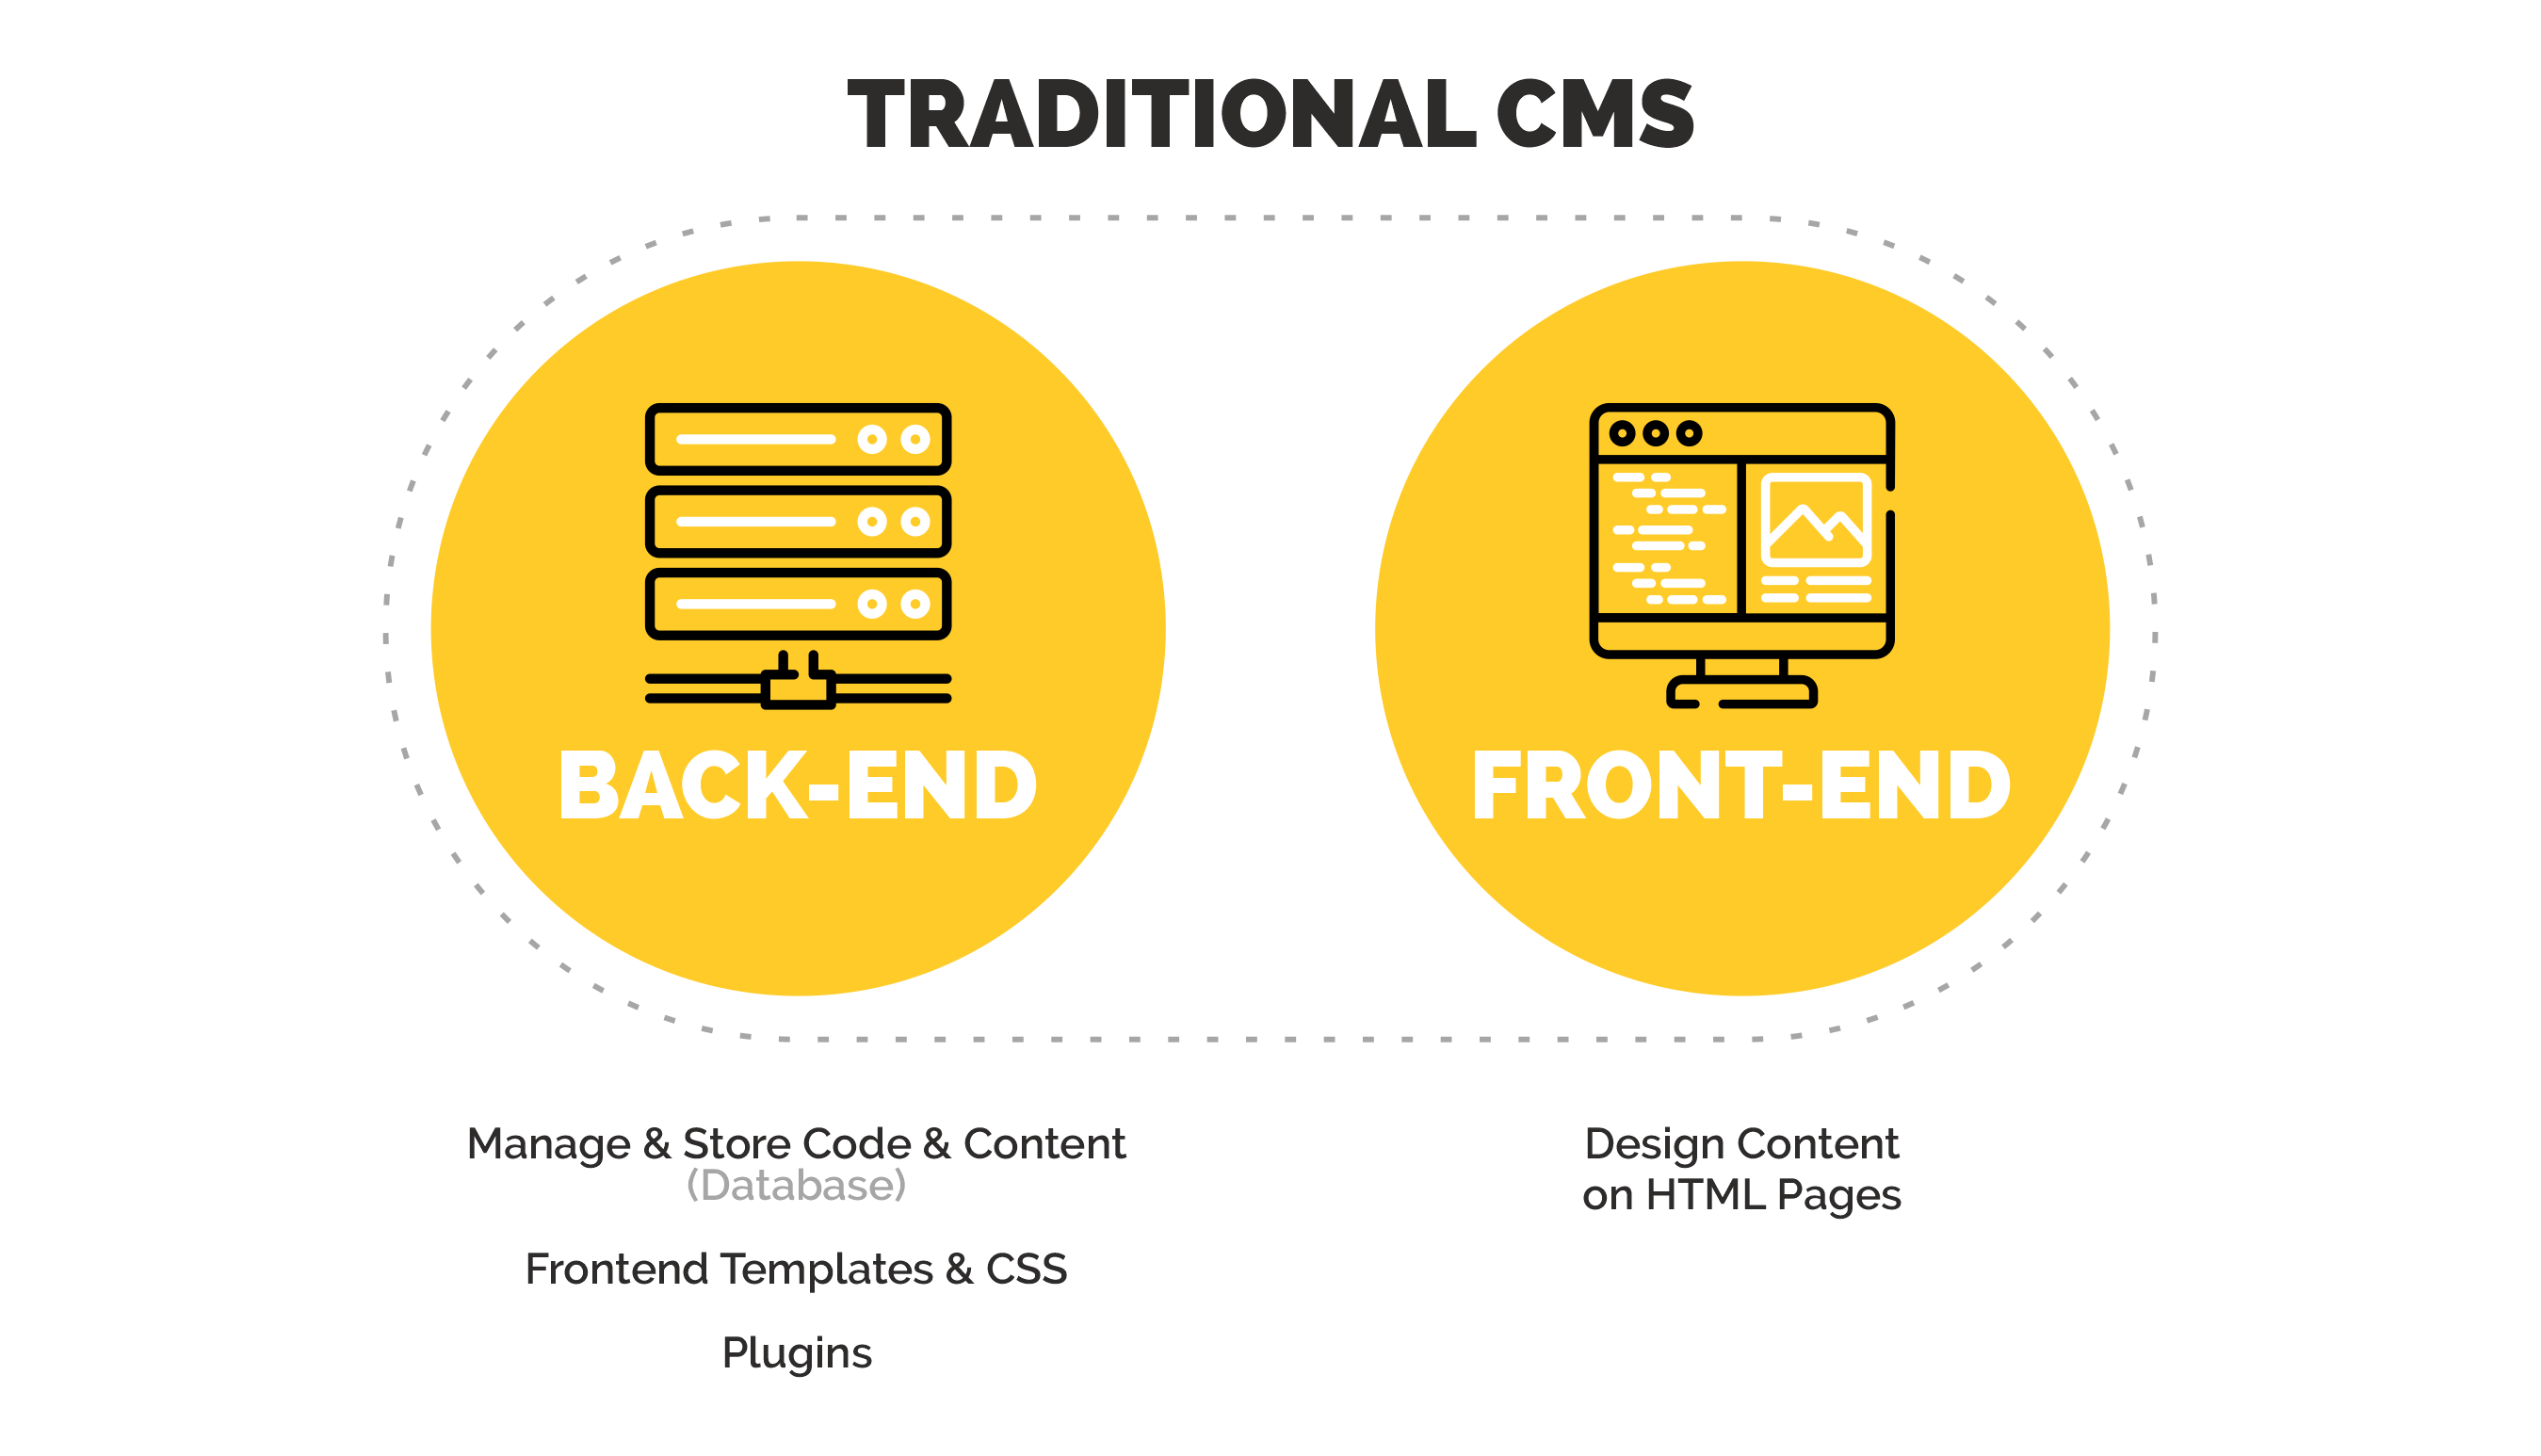 a Traditional CMS